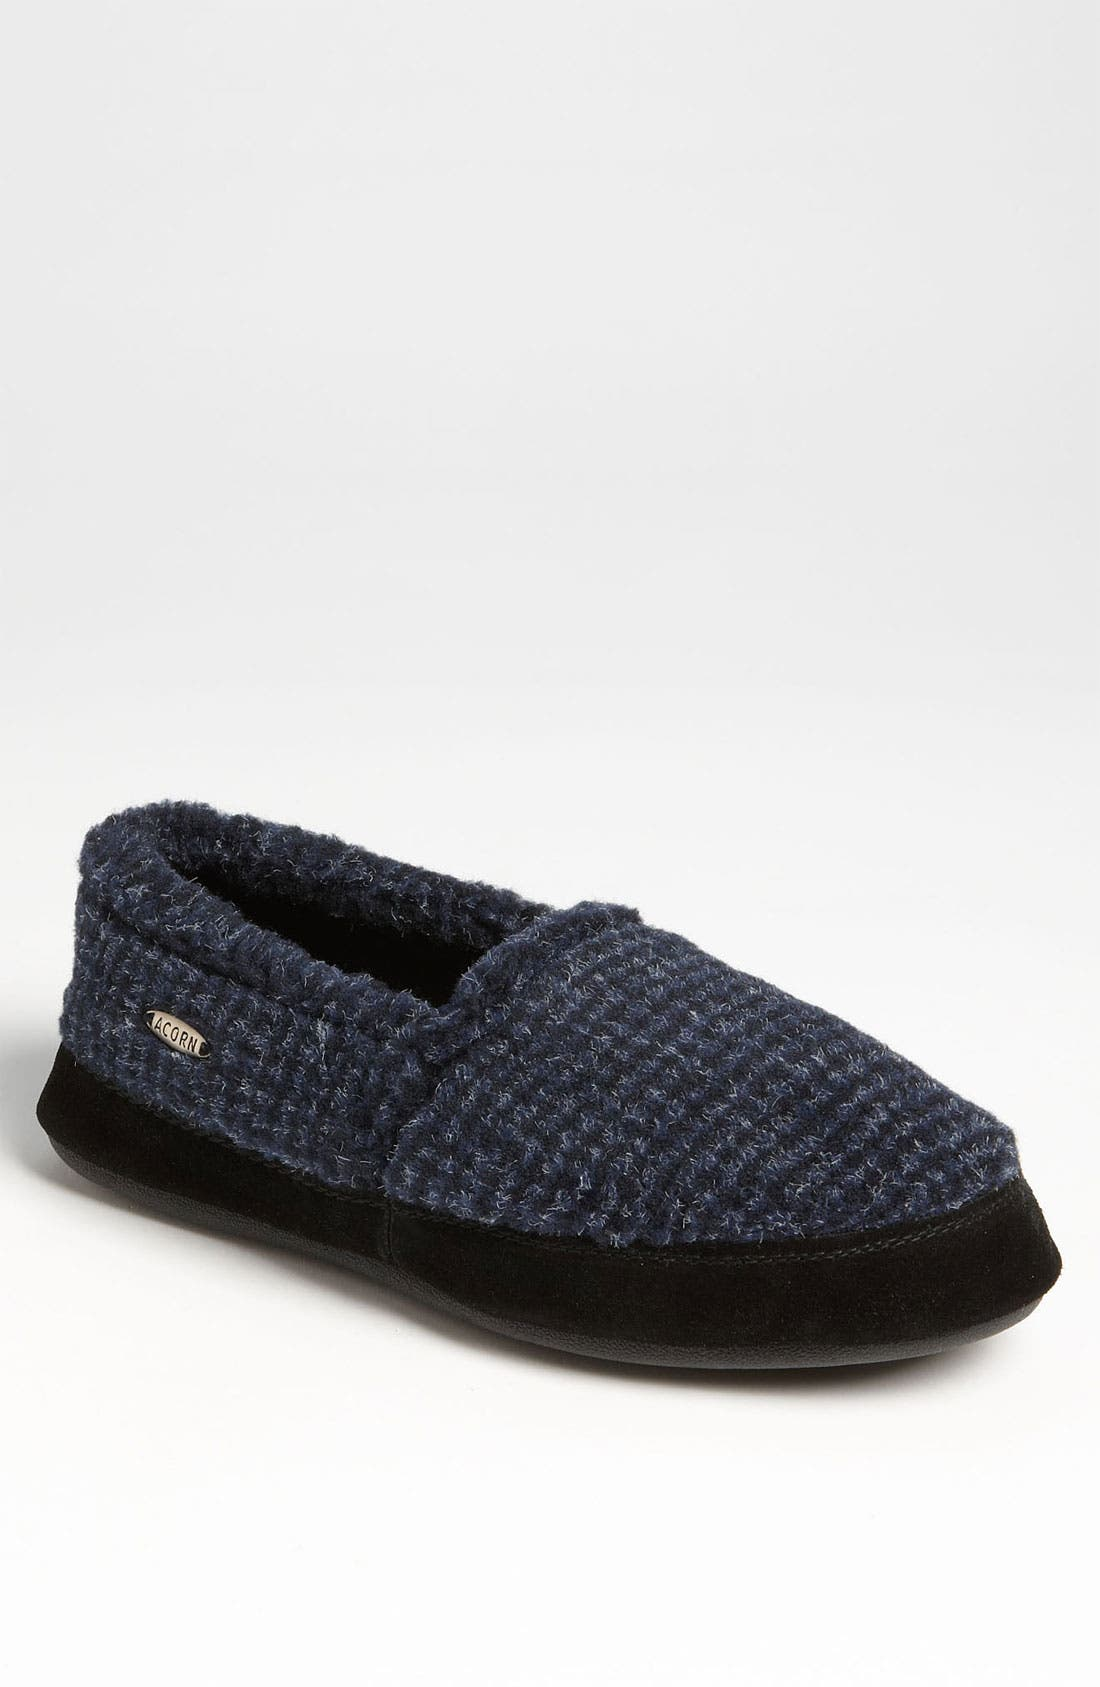 Alternate Image 1 Selected - Acorn 'Tex' Slipper (Men)